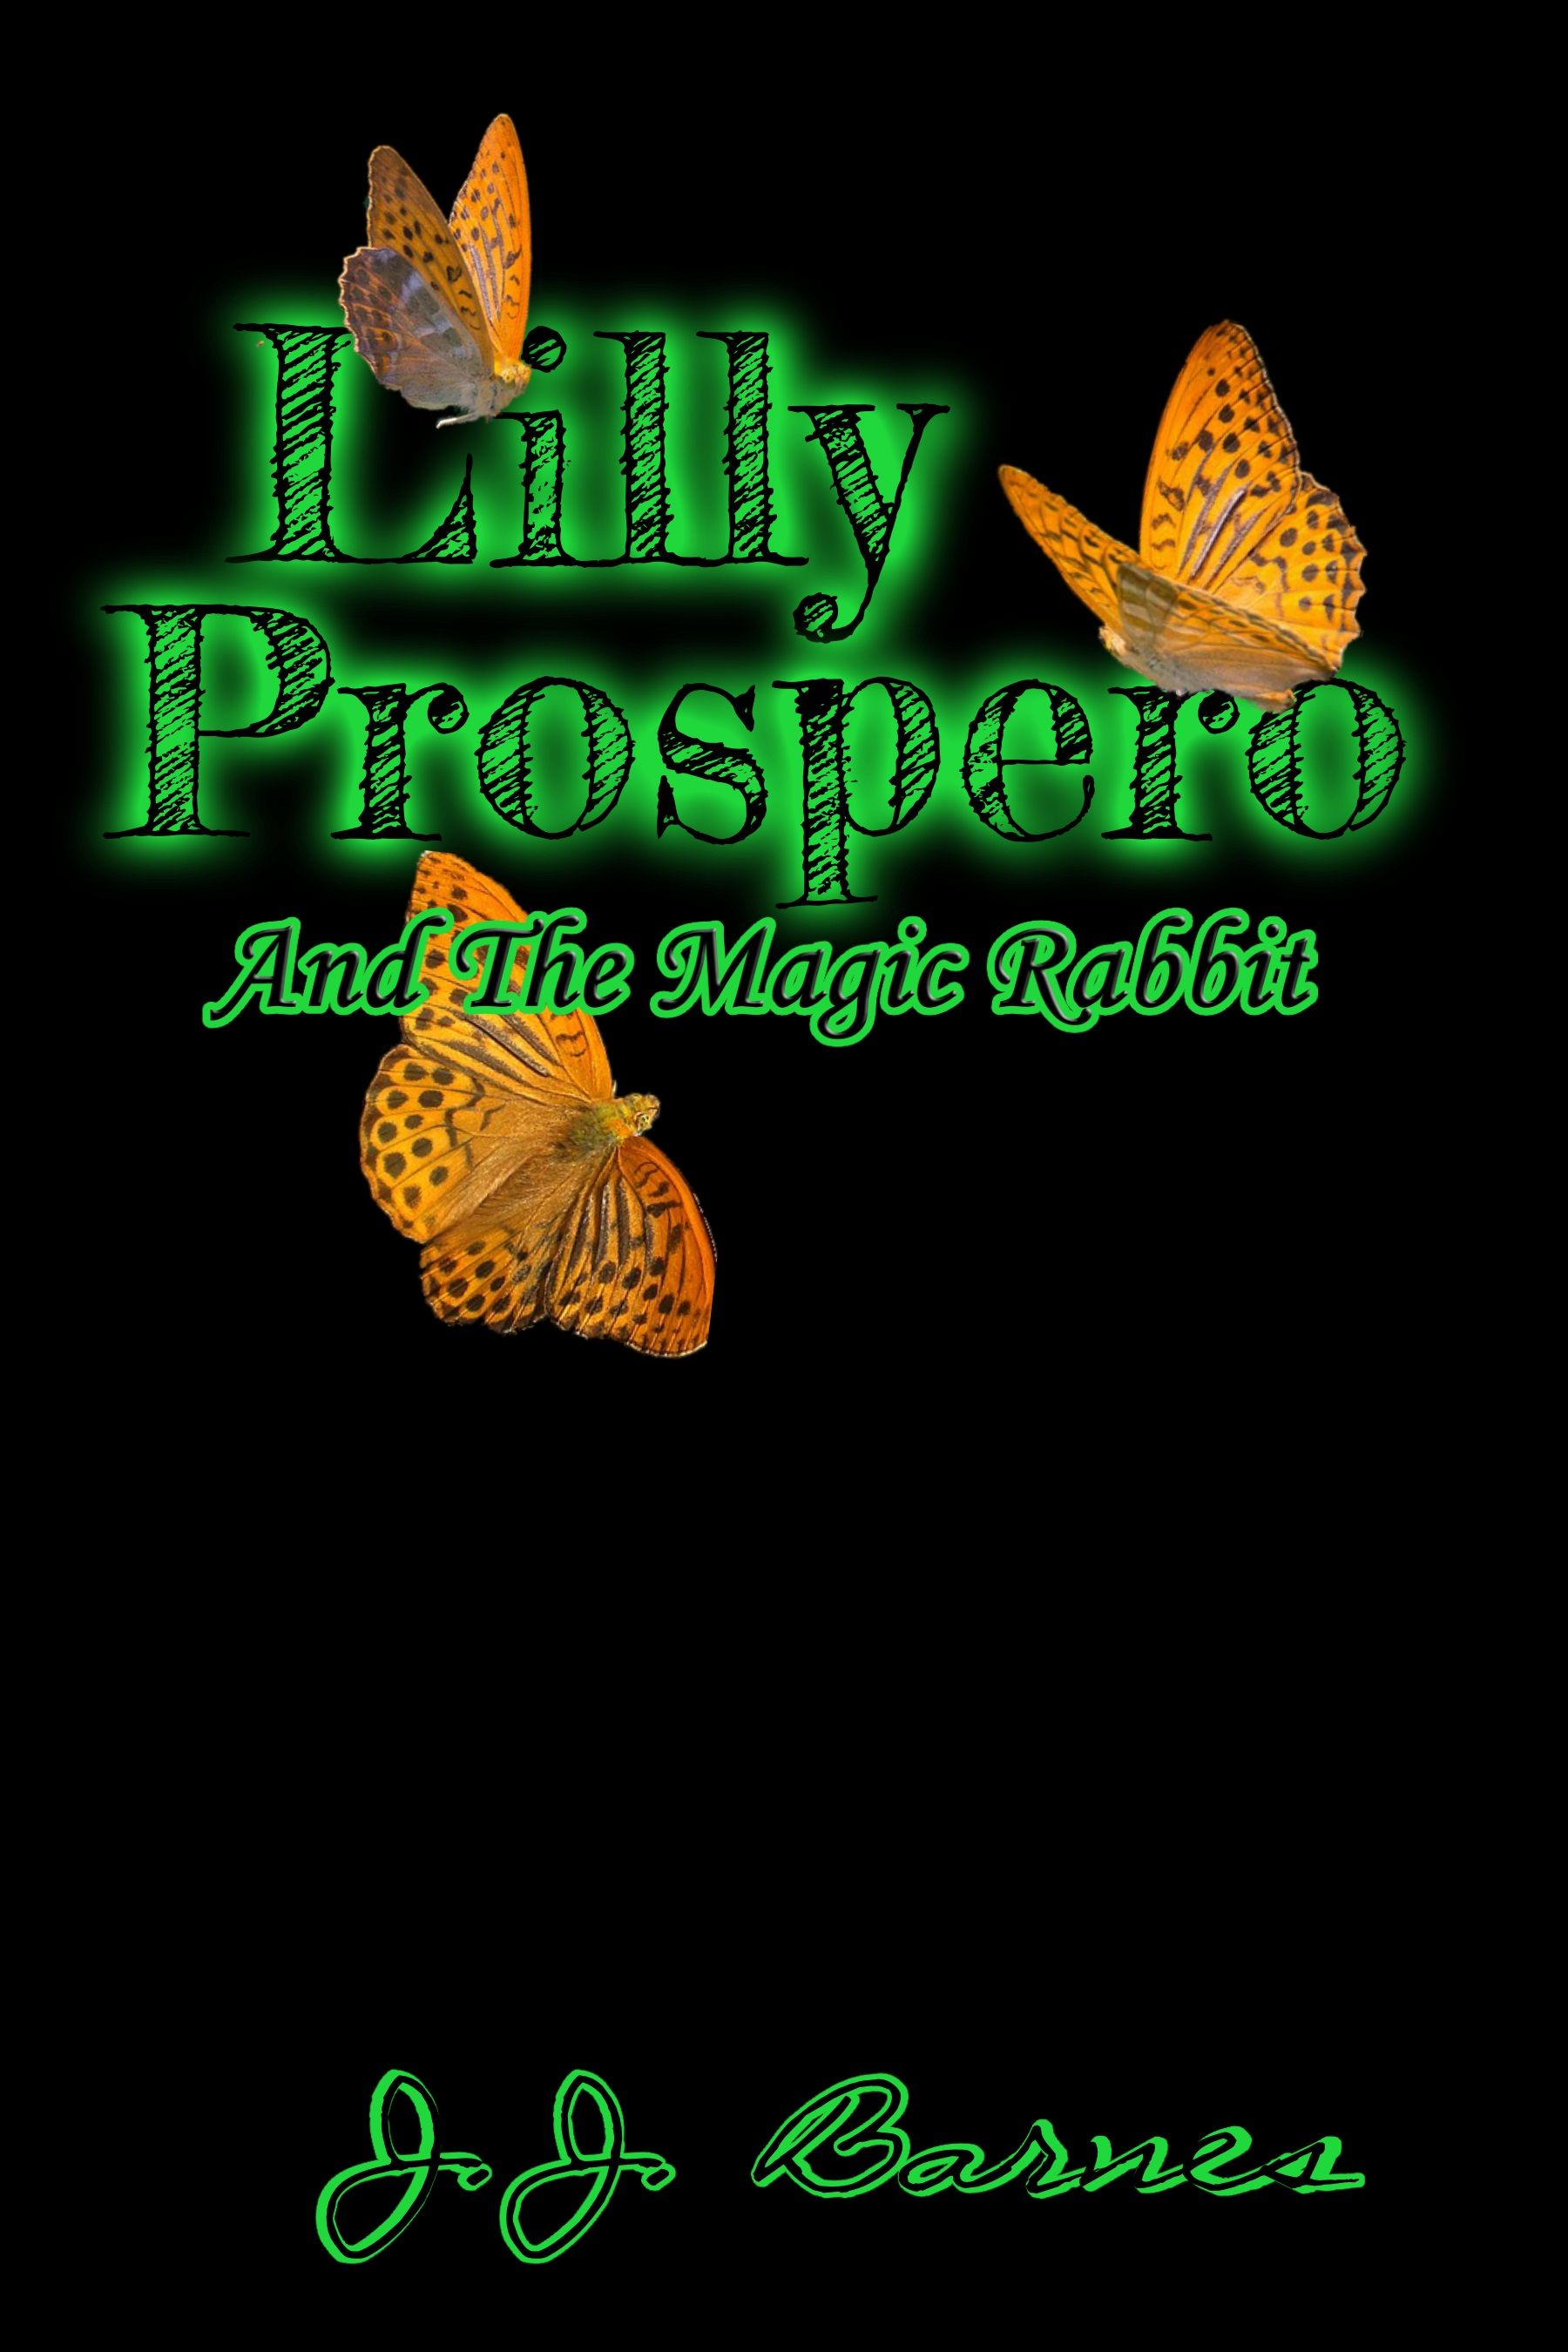 Lilly Prospero And The Magic Rabbit